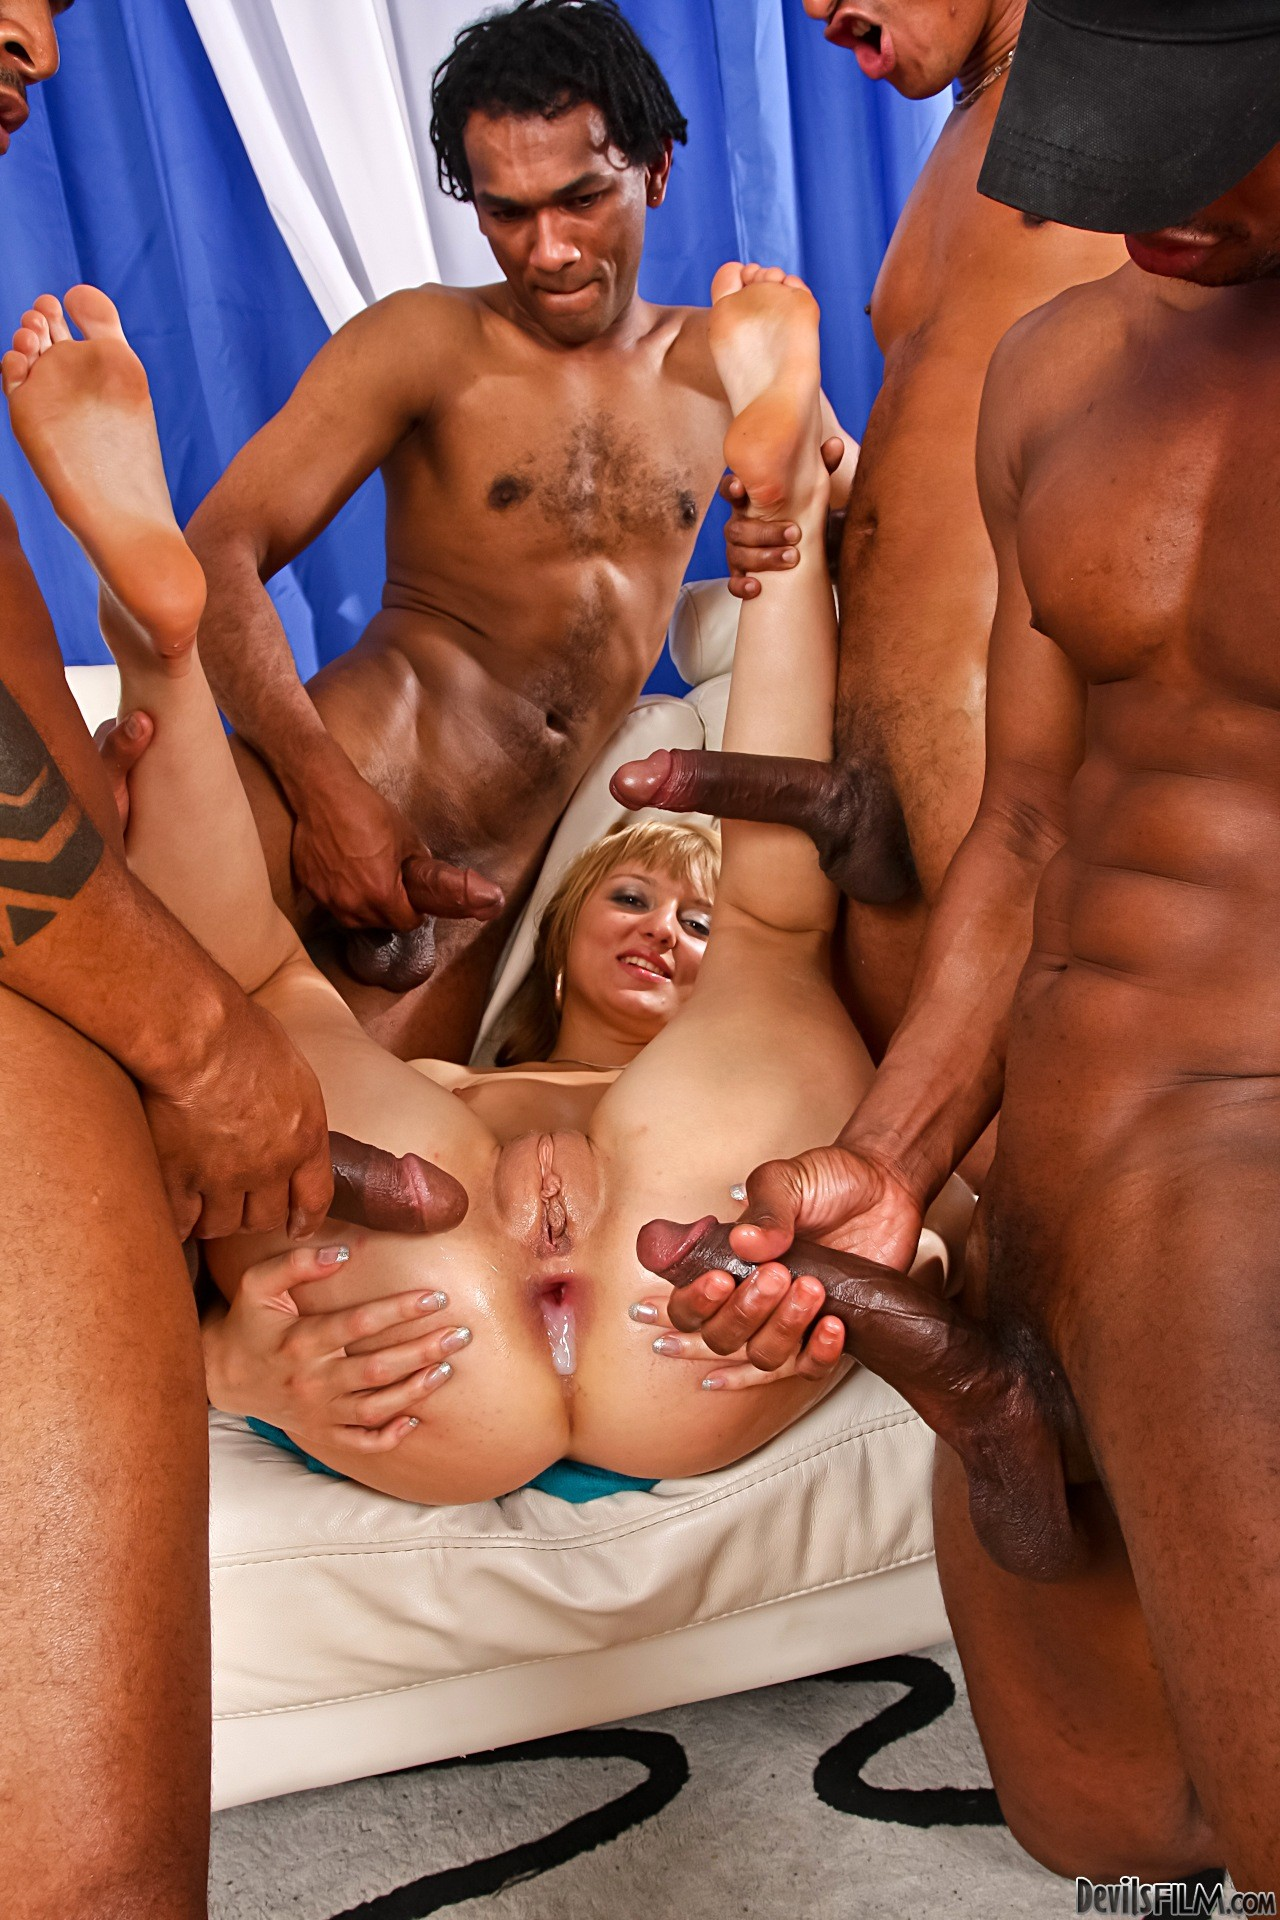 Gangbang ass stretched pictures forum